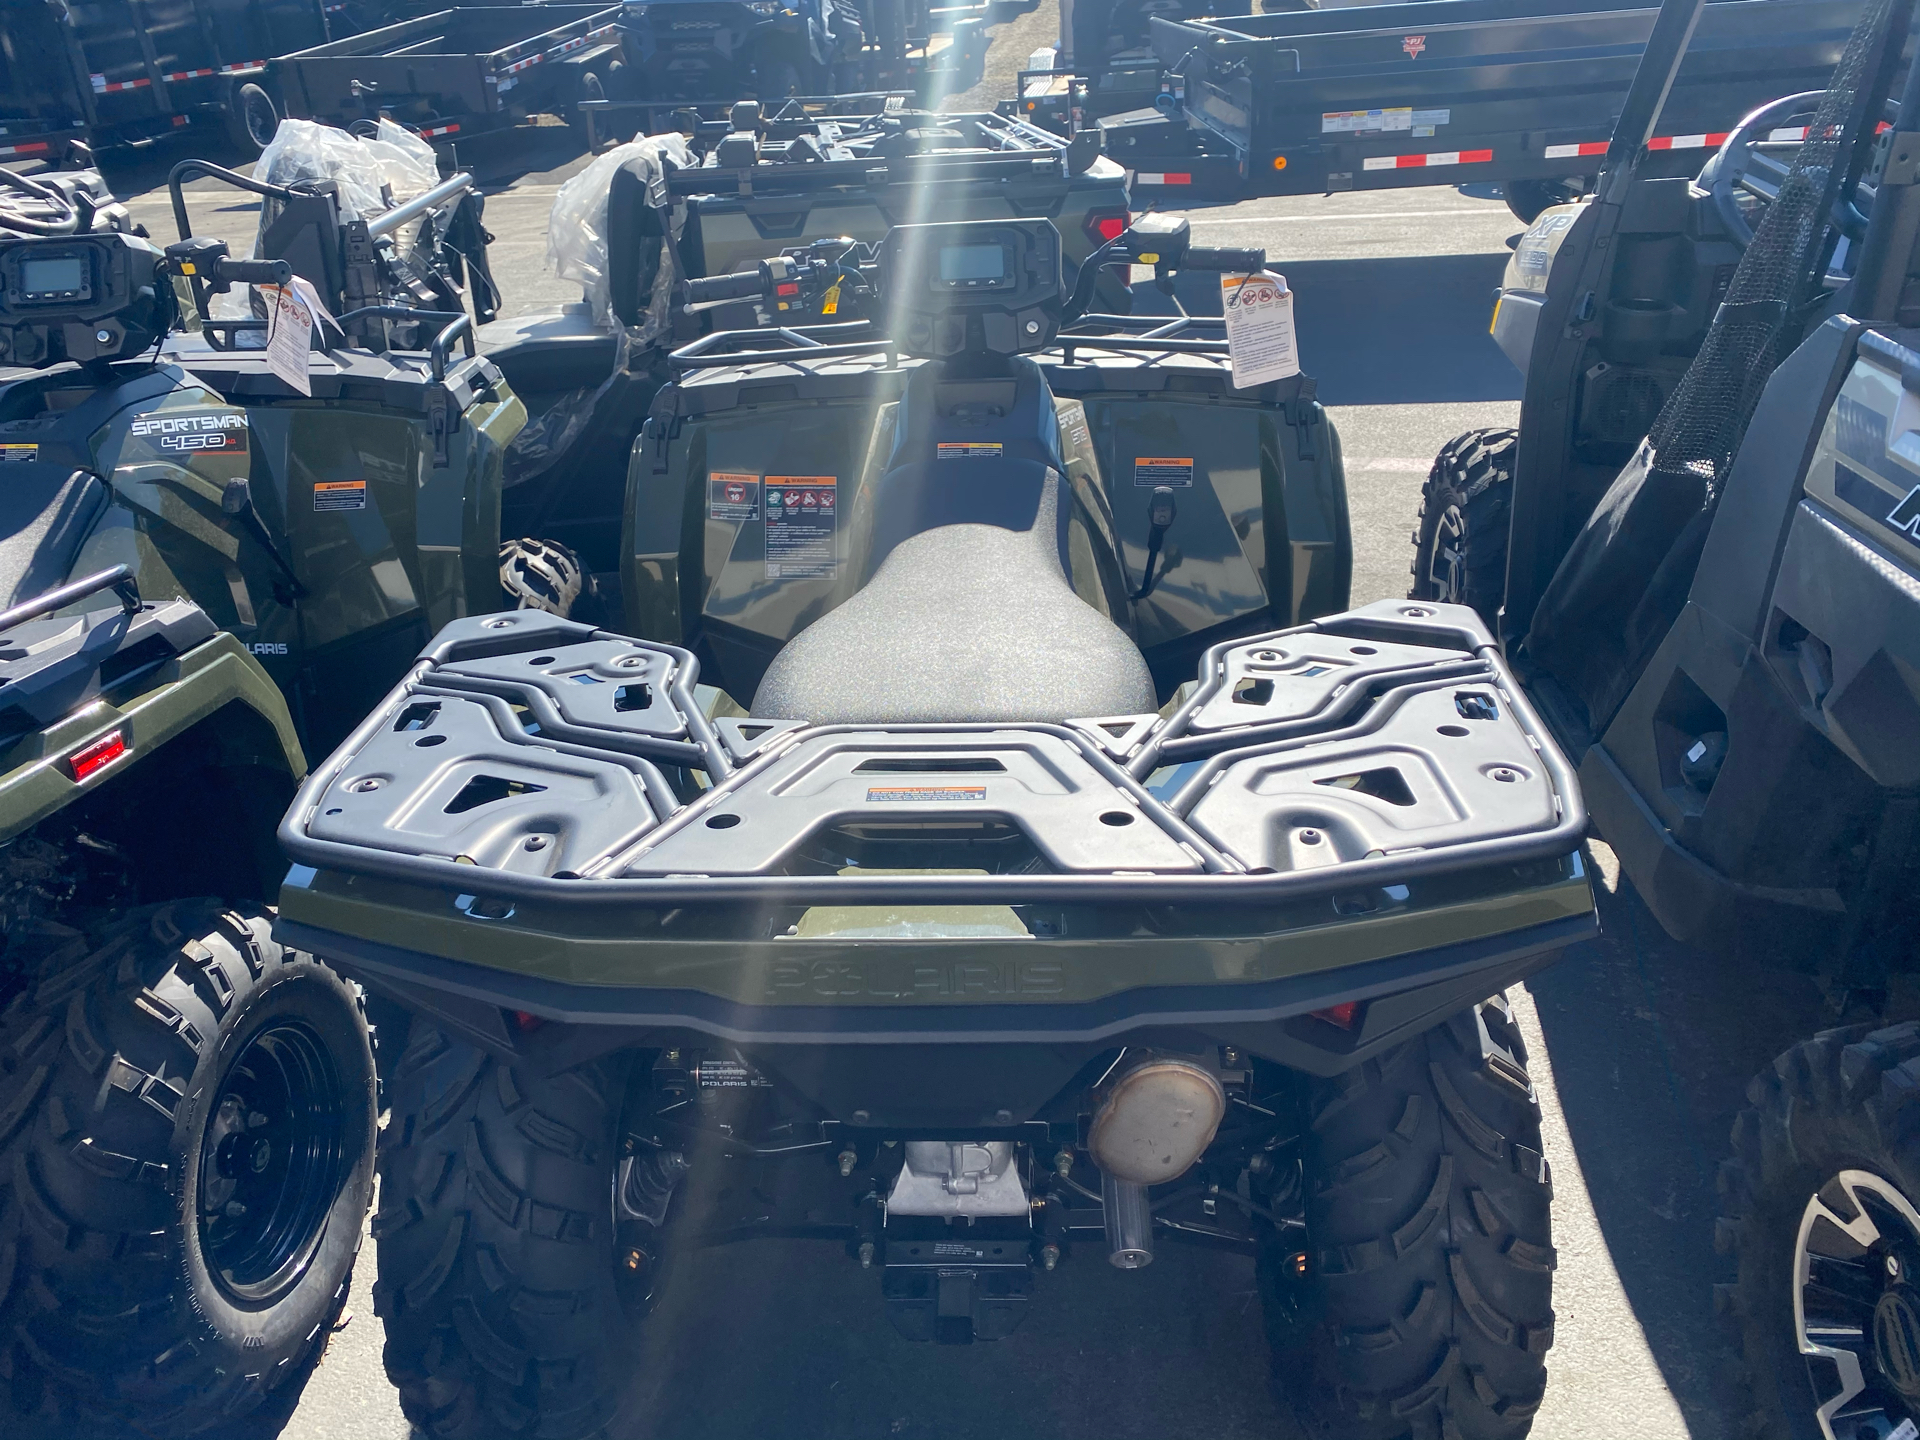 2021 Polaris Sportsman 570 EPS Utility Package in Elk Grove, California - Photo 9